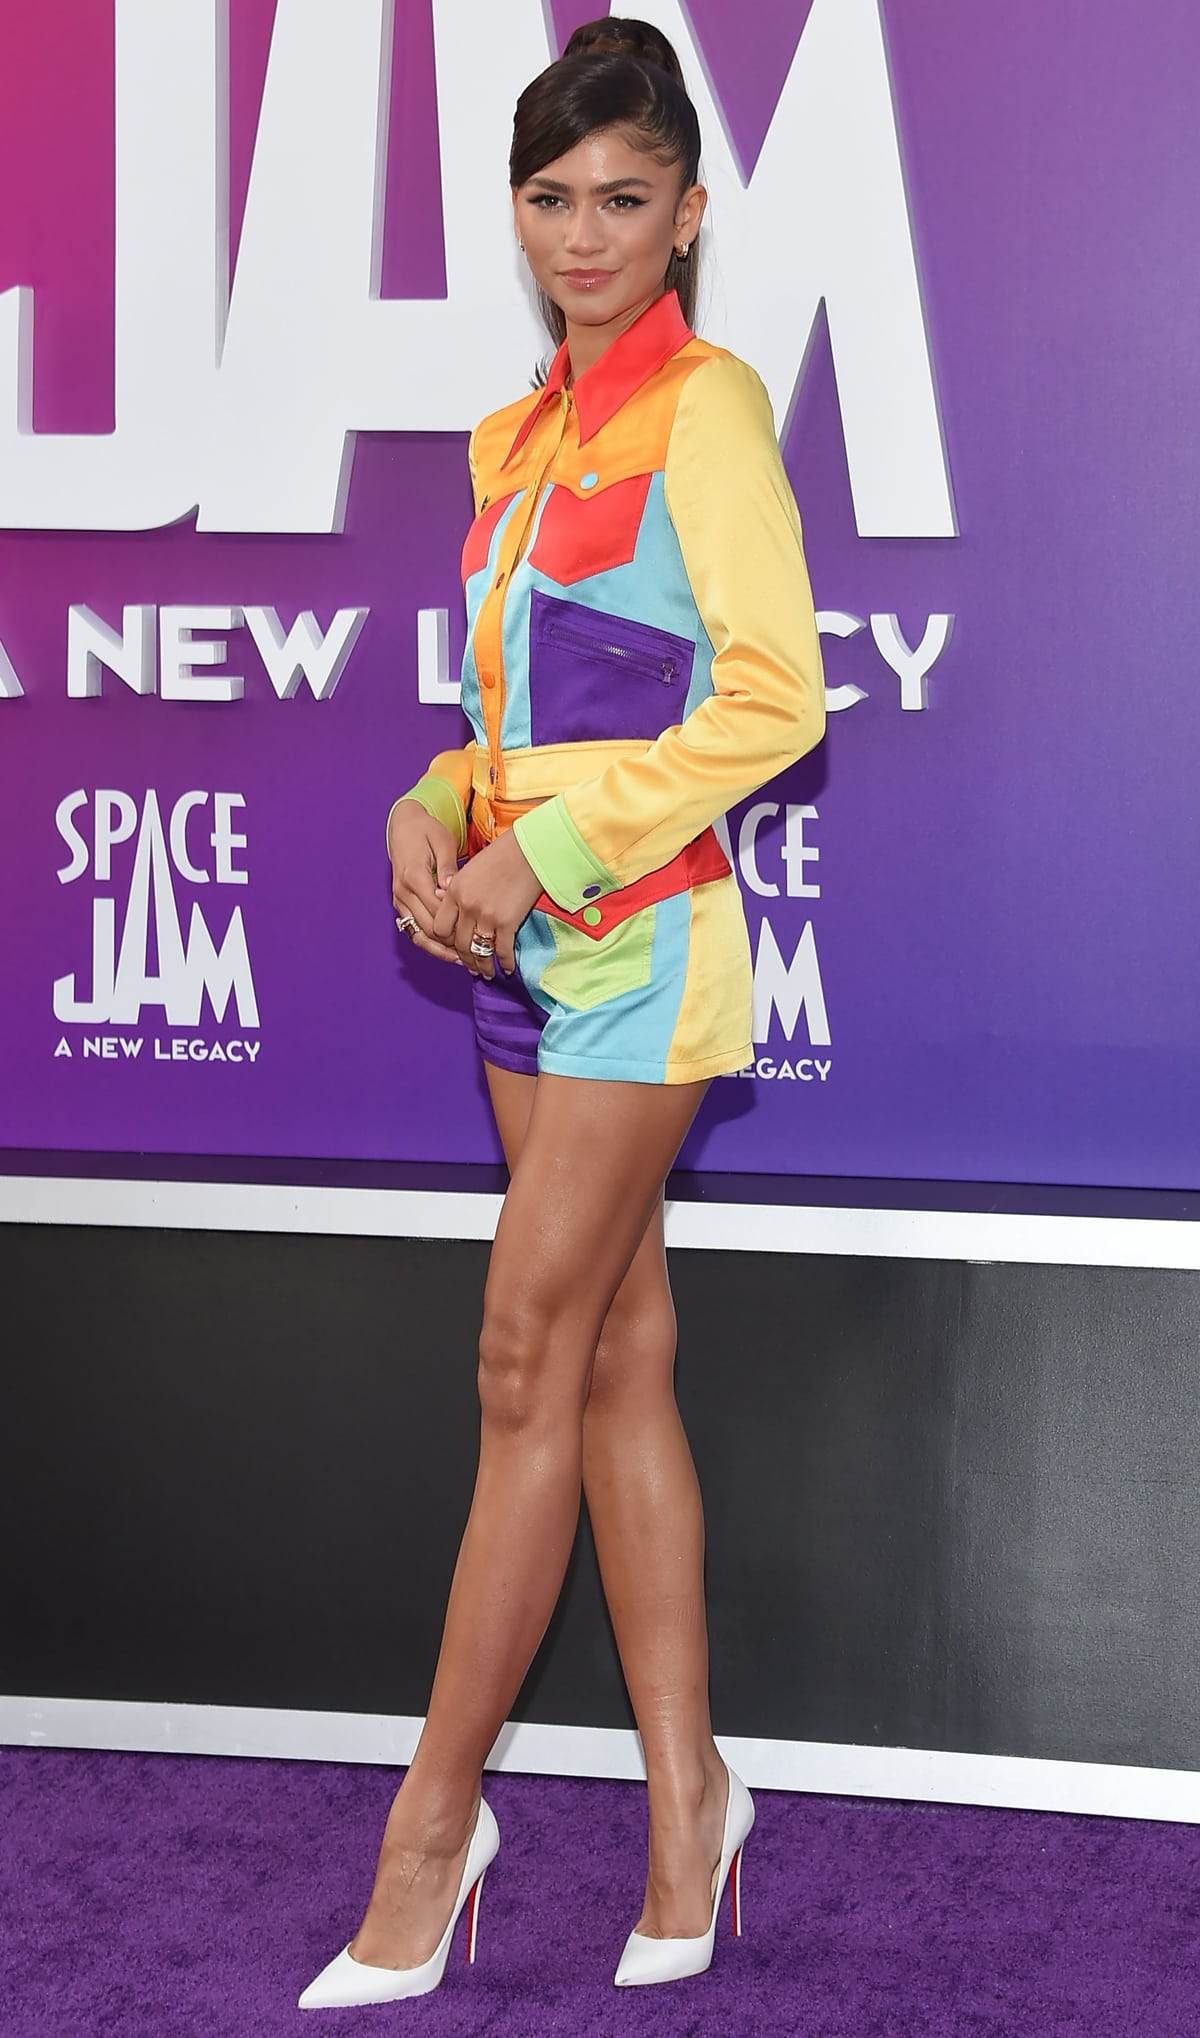 Zendaya flaunts her long legs in Christian Louboutin pumps paired with a colorful Moschino outfit